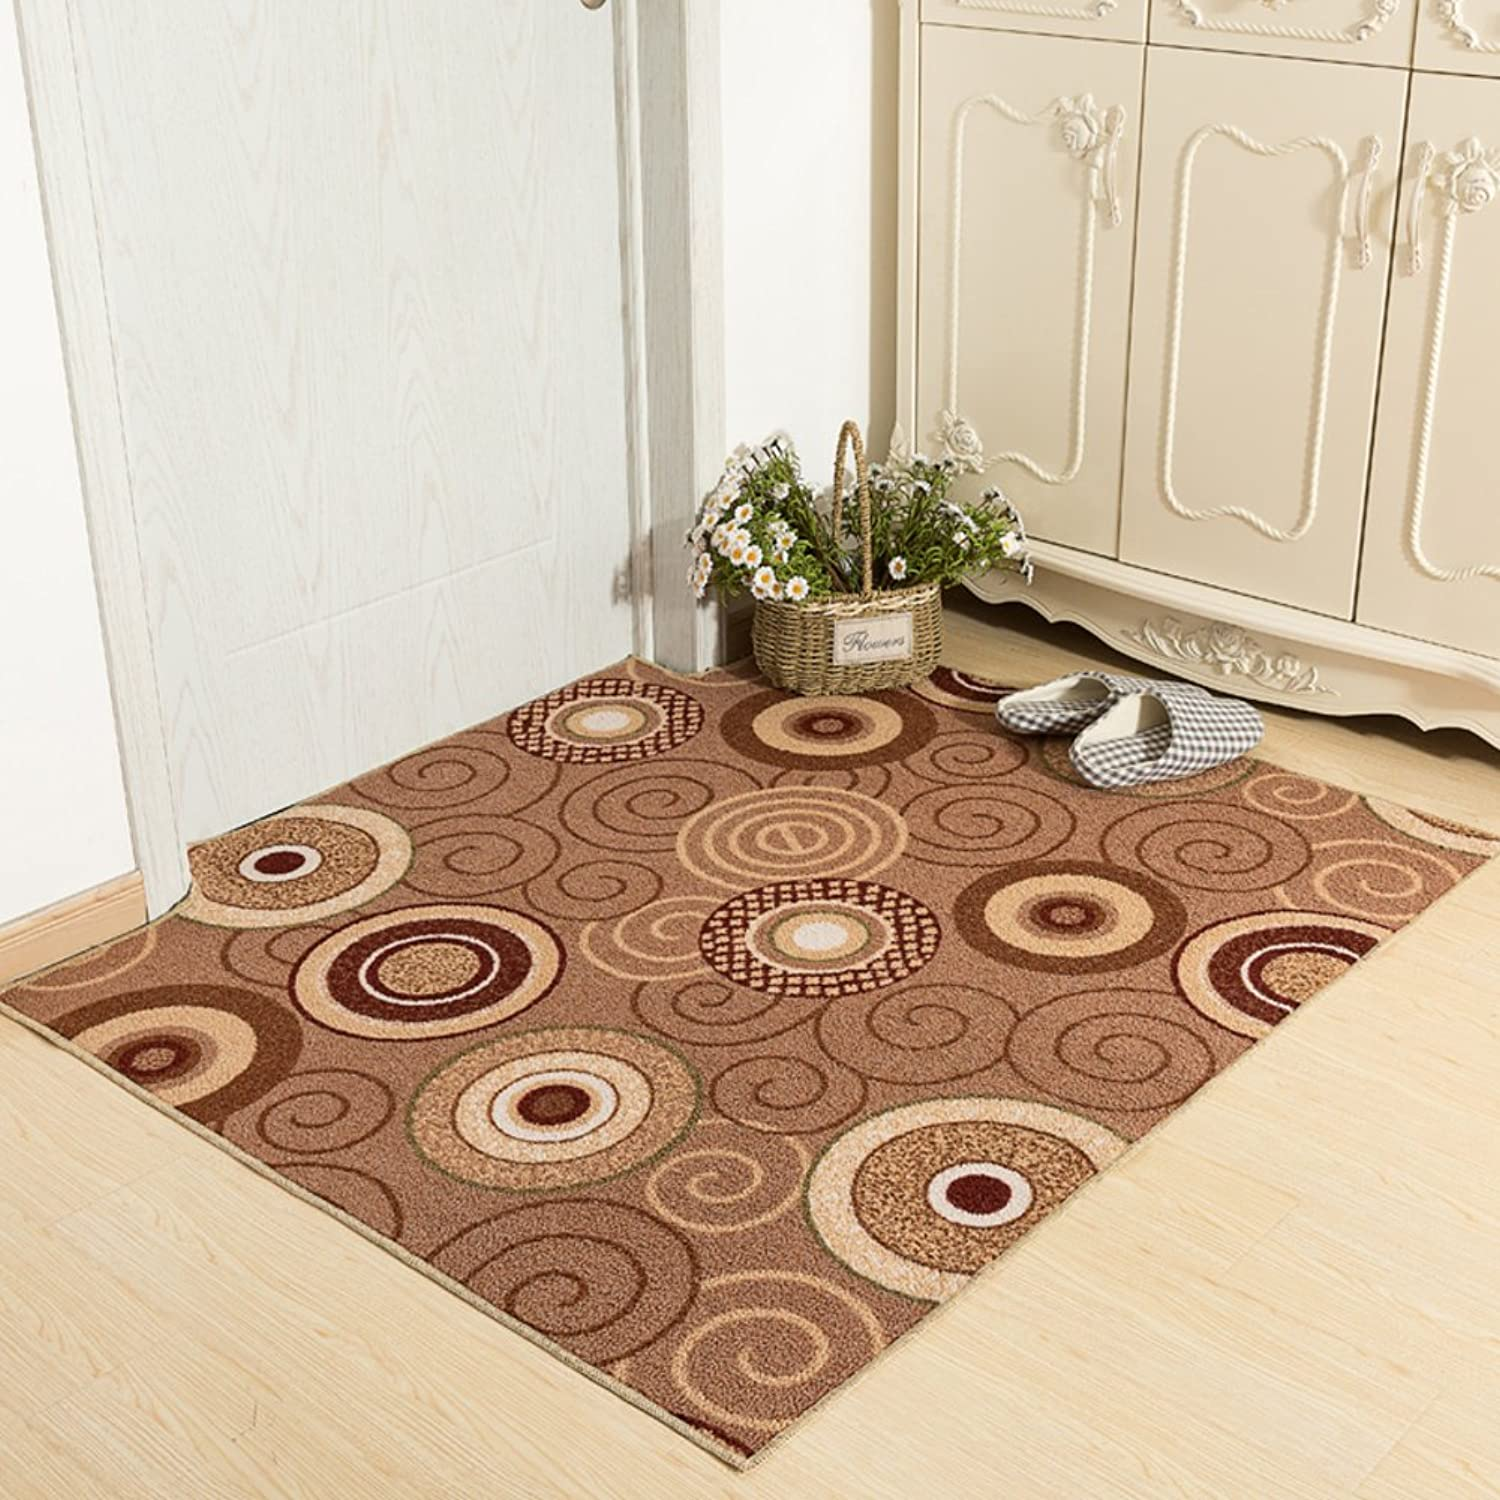 Indoor Mats Door,Door Mats Bedroom Mats Restroom,Bathroom Non-Slip Mats Car Mats-Bathroom-A 120x140cm(47x55inch)